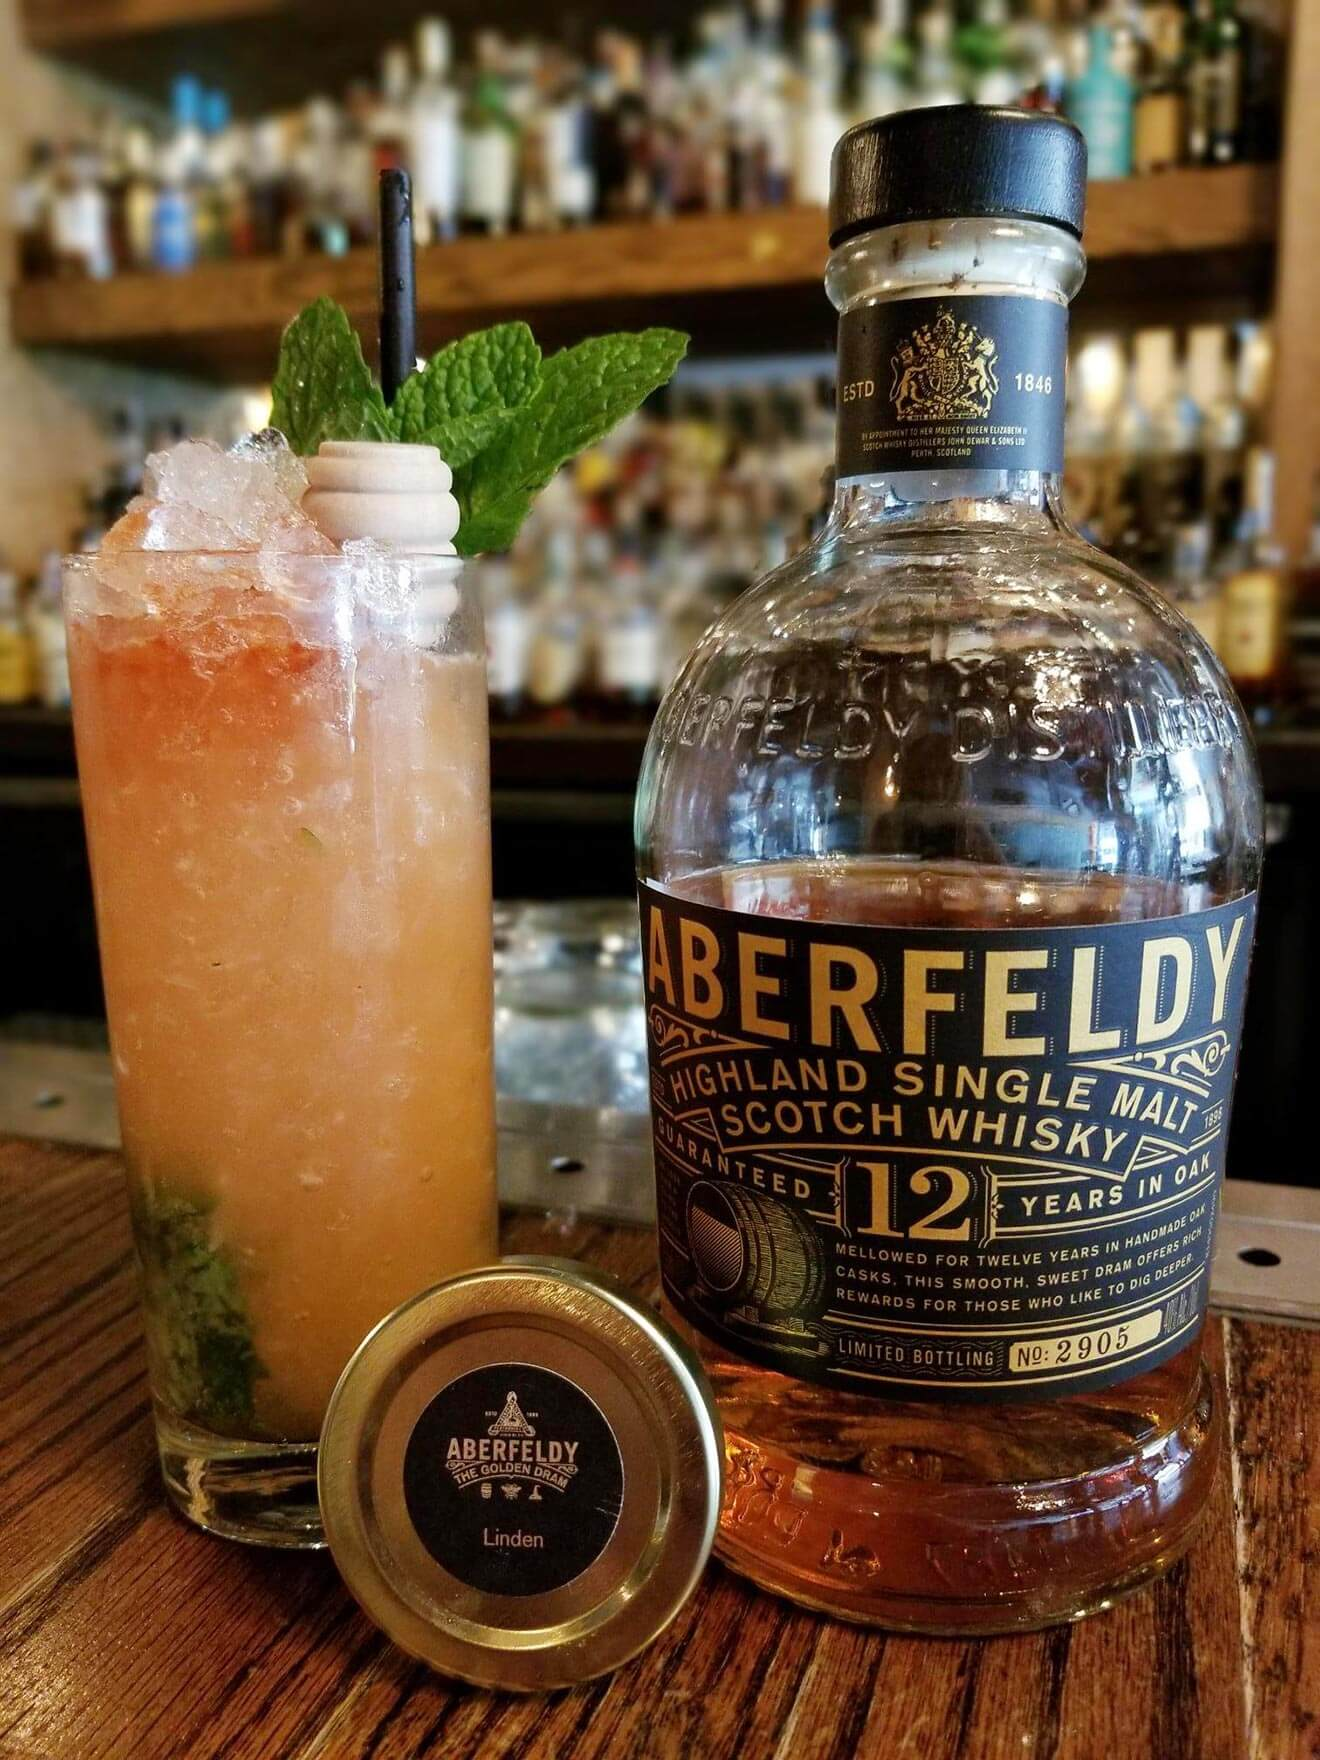 American-Whiskey Aberfeldy Mint Honey